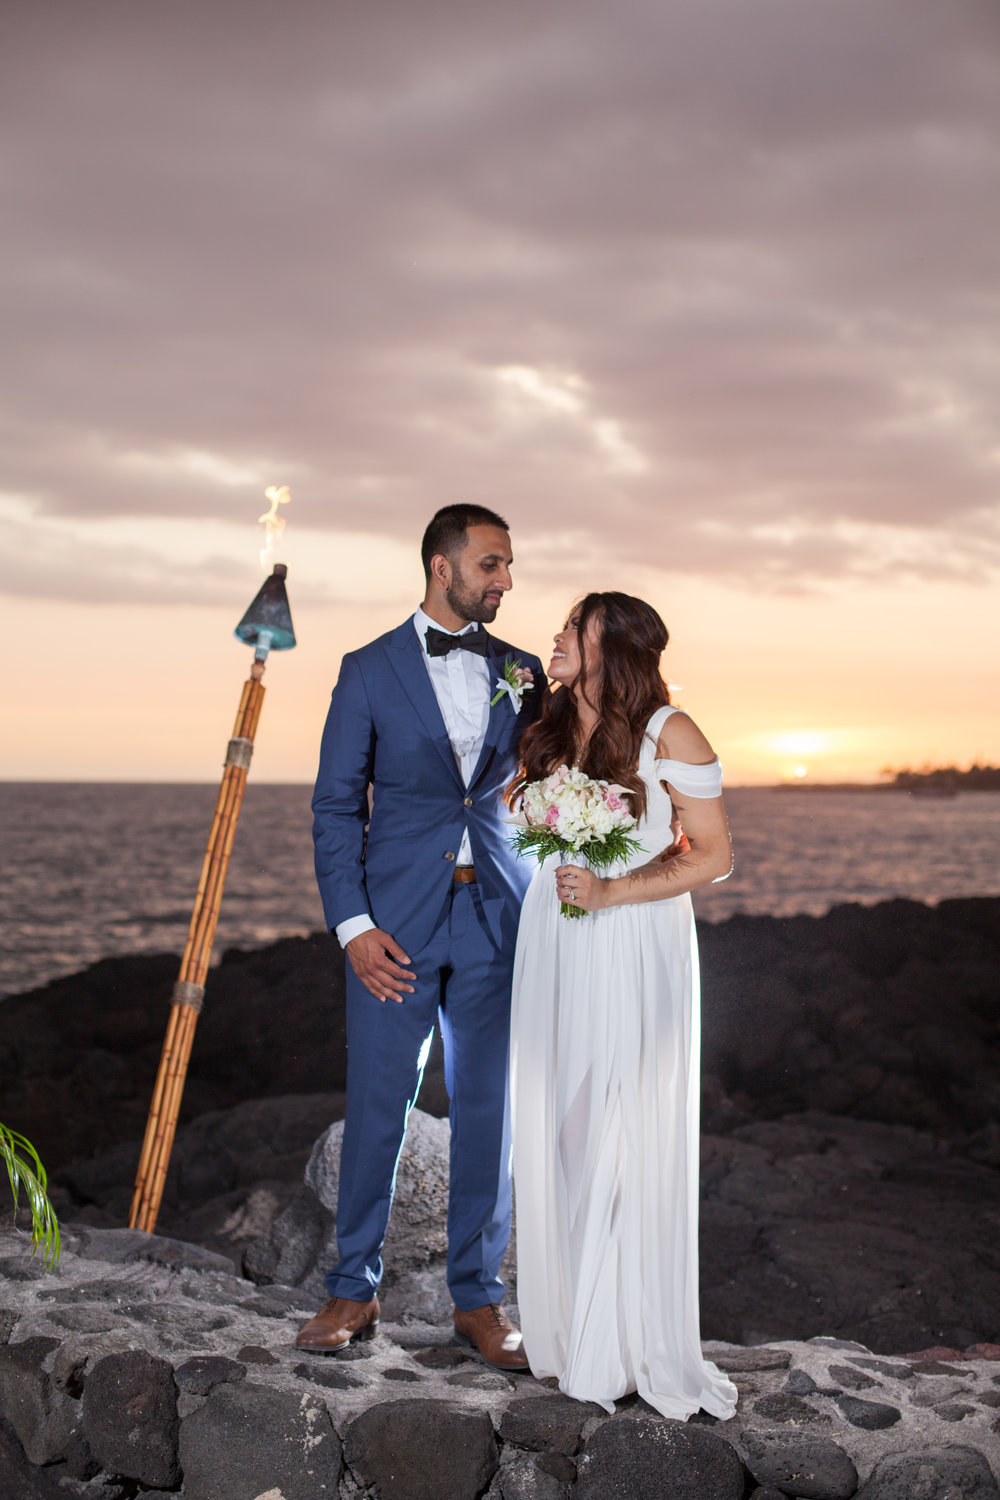 big island hawaii royal kona resort beach wedding © kelilina photography 20170615190232.jpg